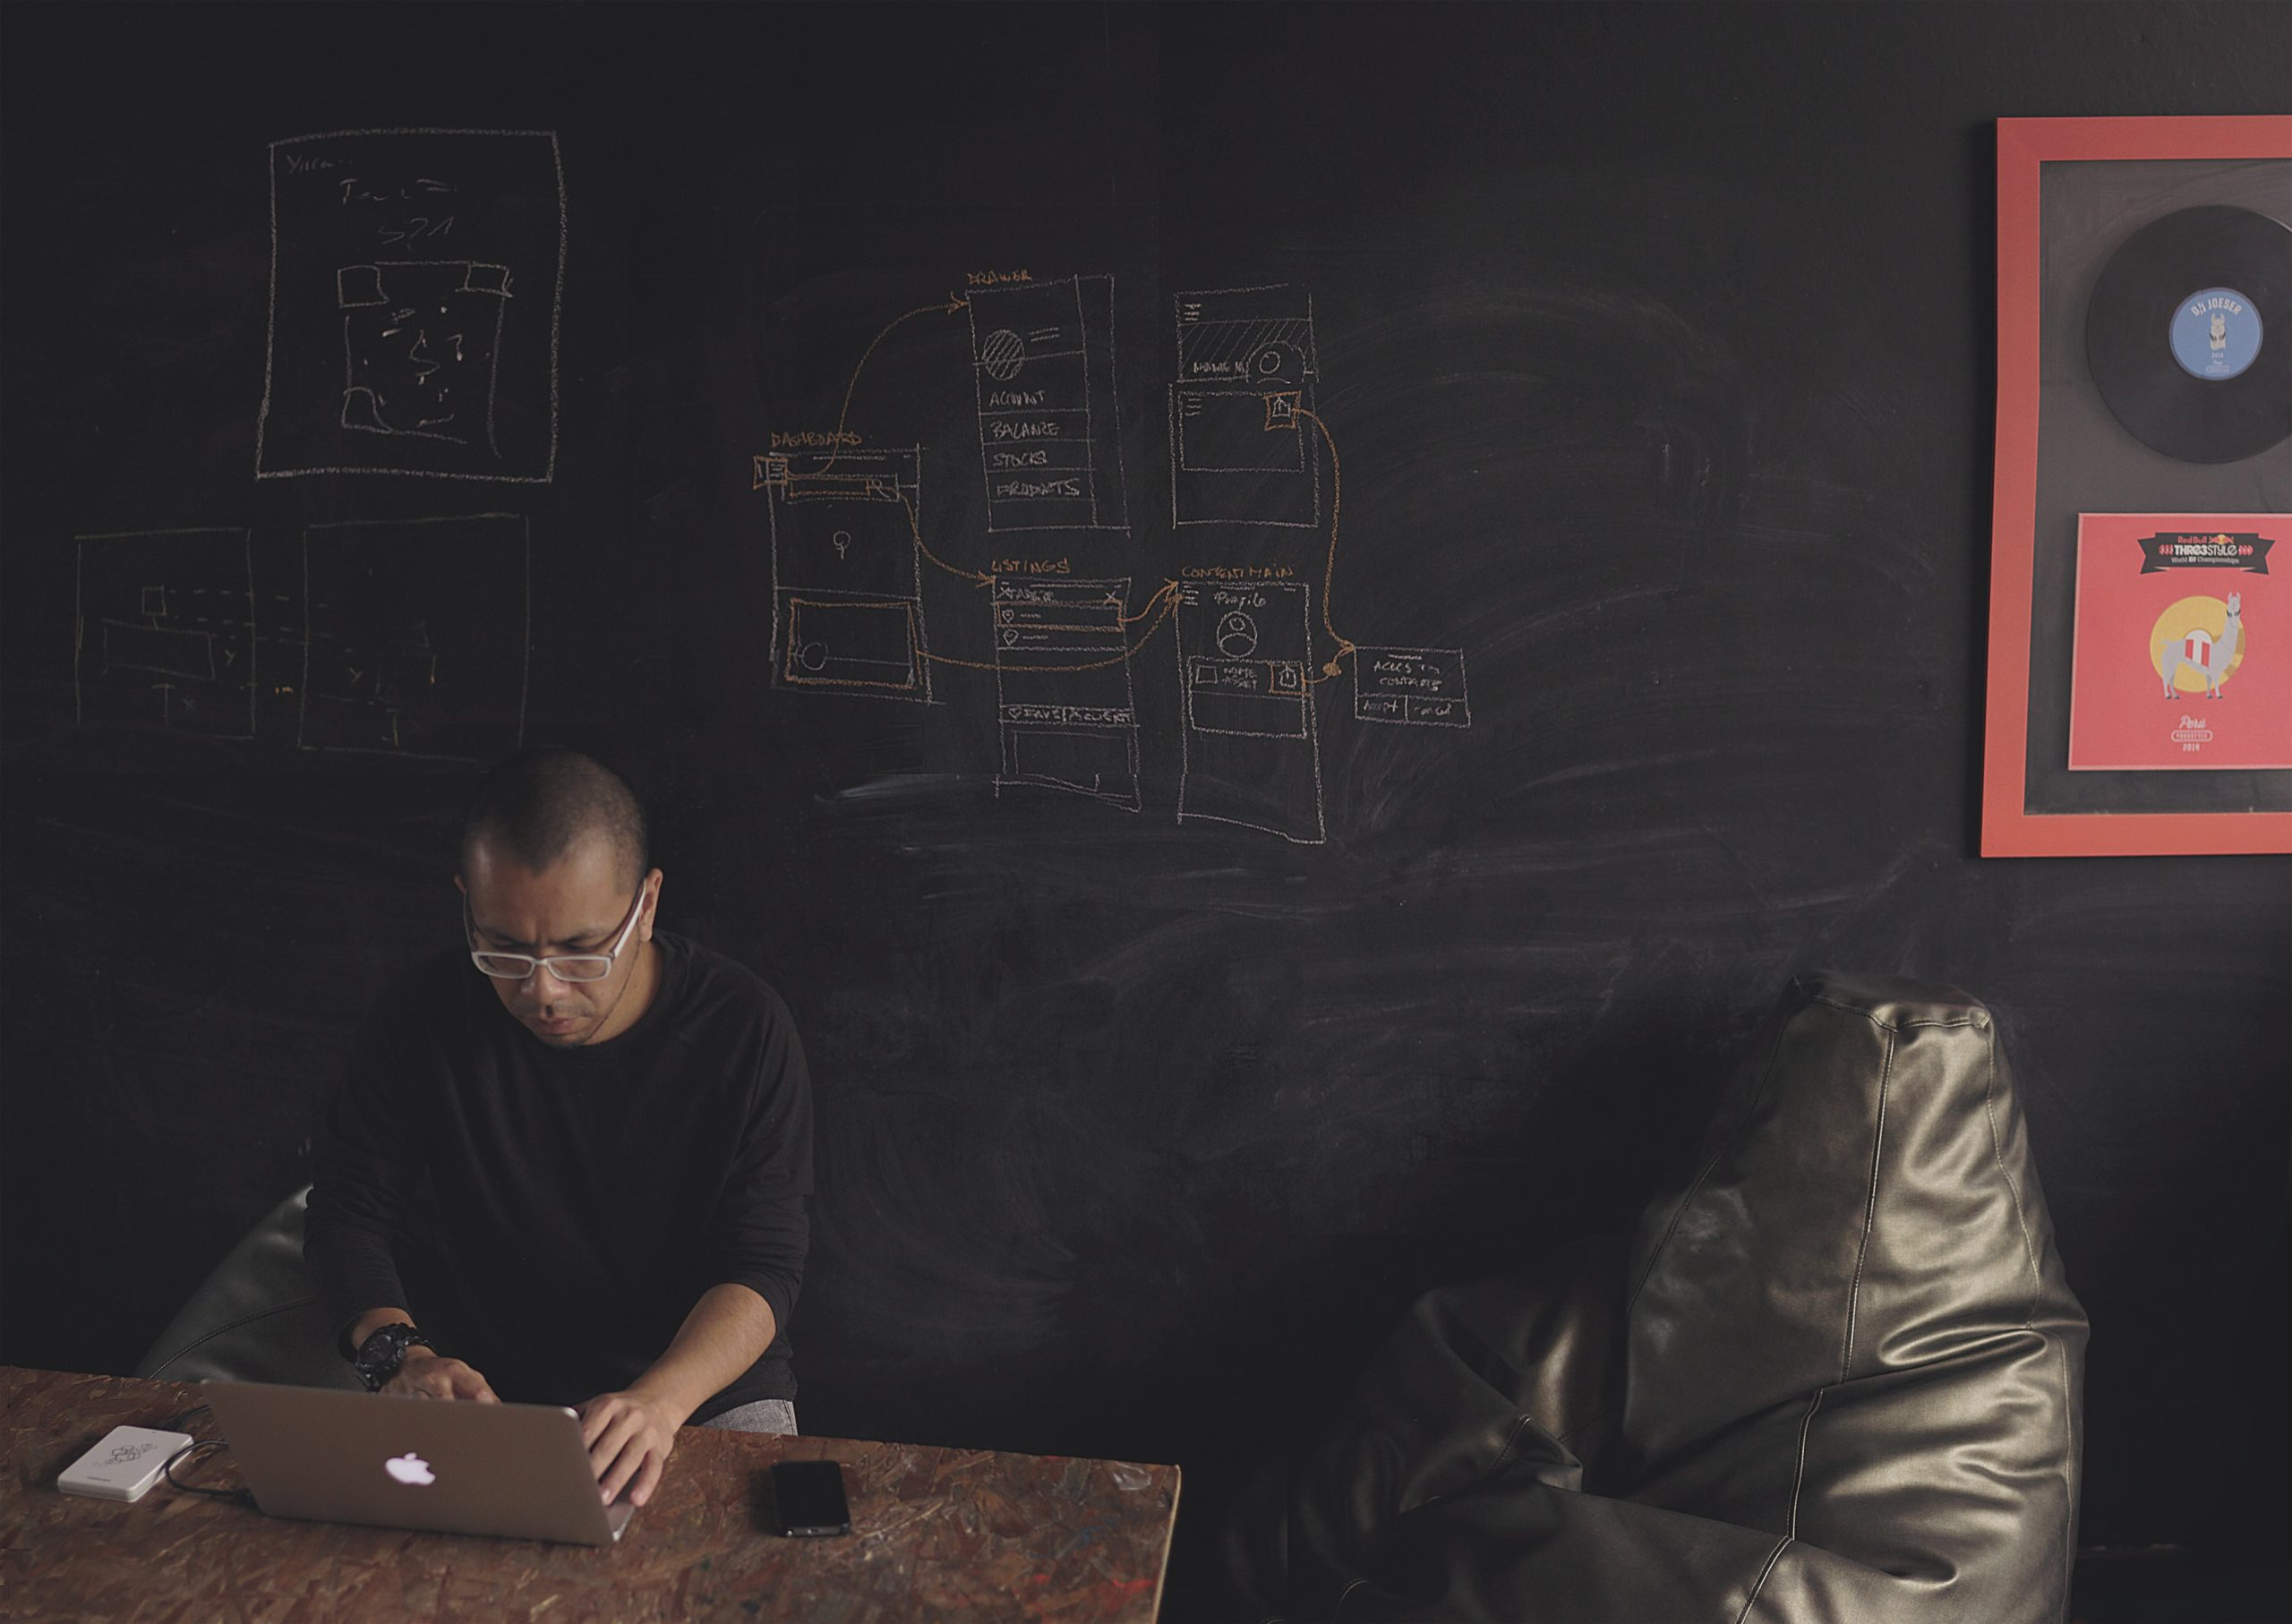 How to manage an IT team effectively without a technical background